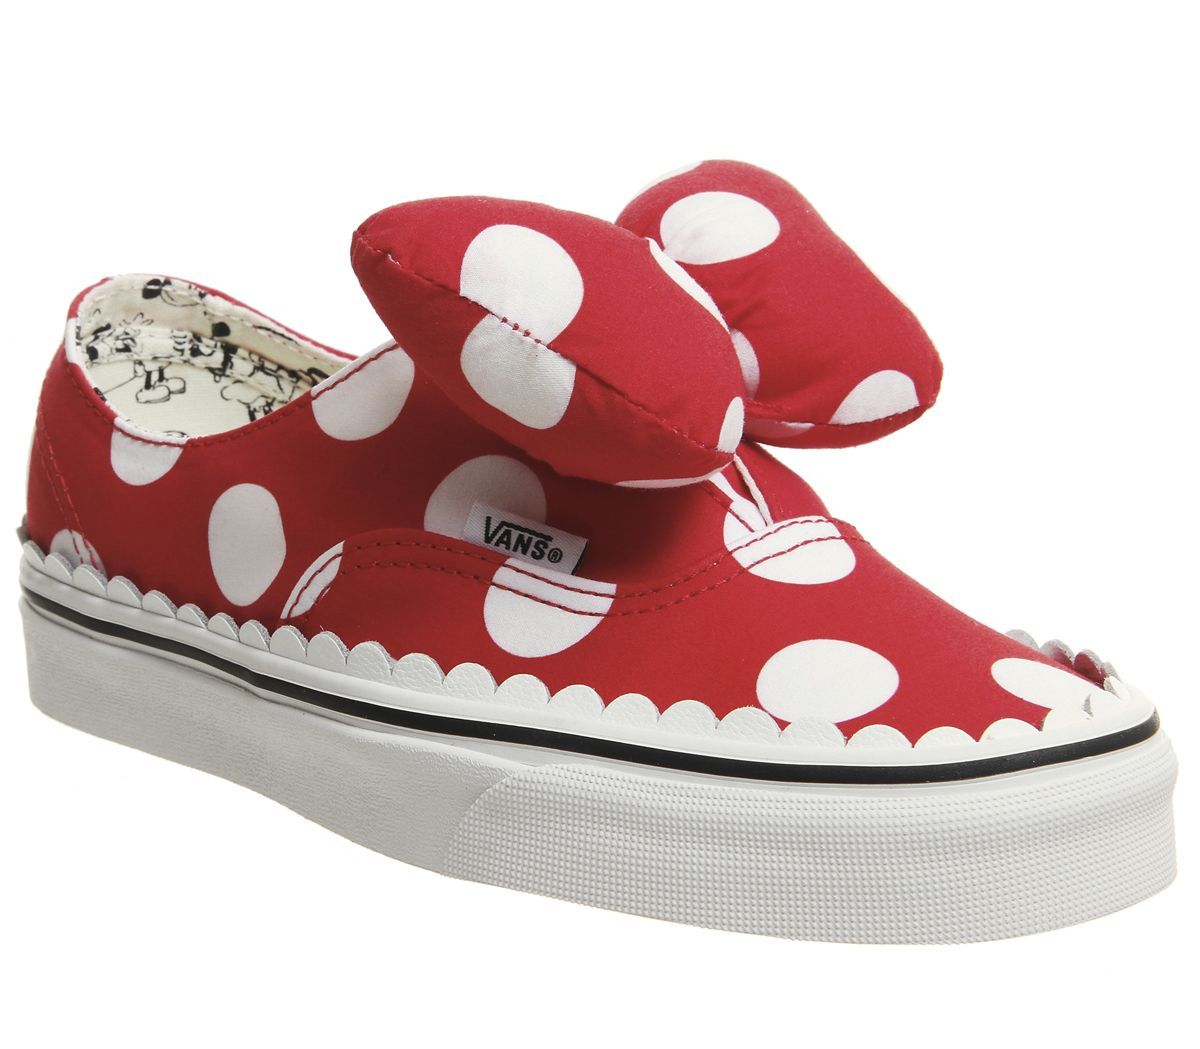 630936fbbed4 Vans Authentic Trainers Minnies Bow True White Disney - Hers trainers